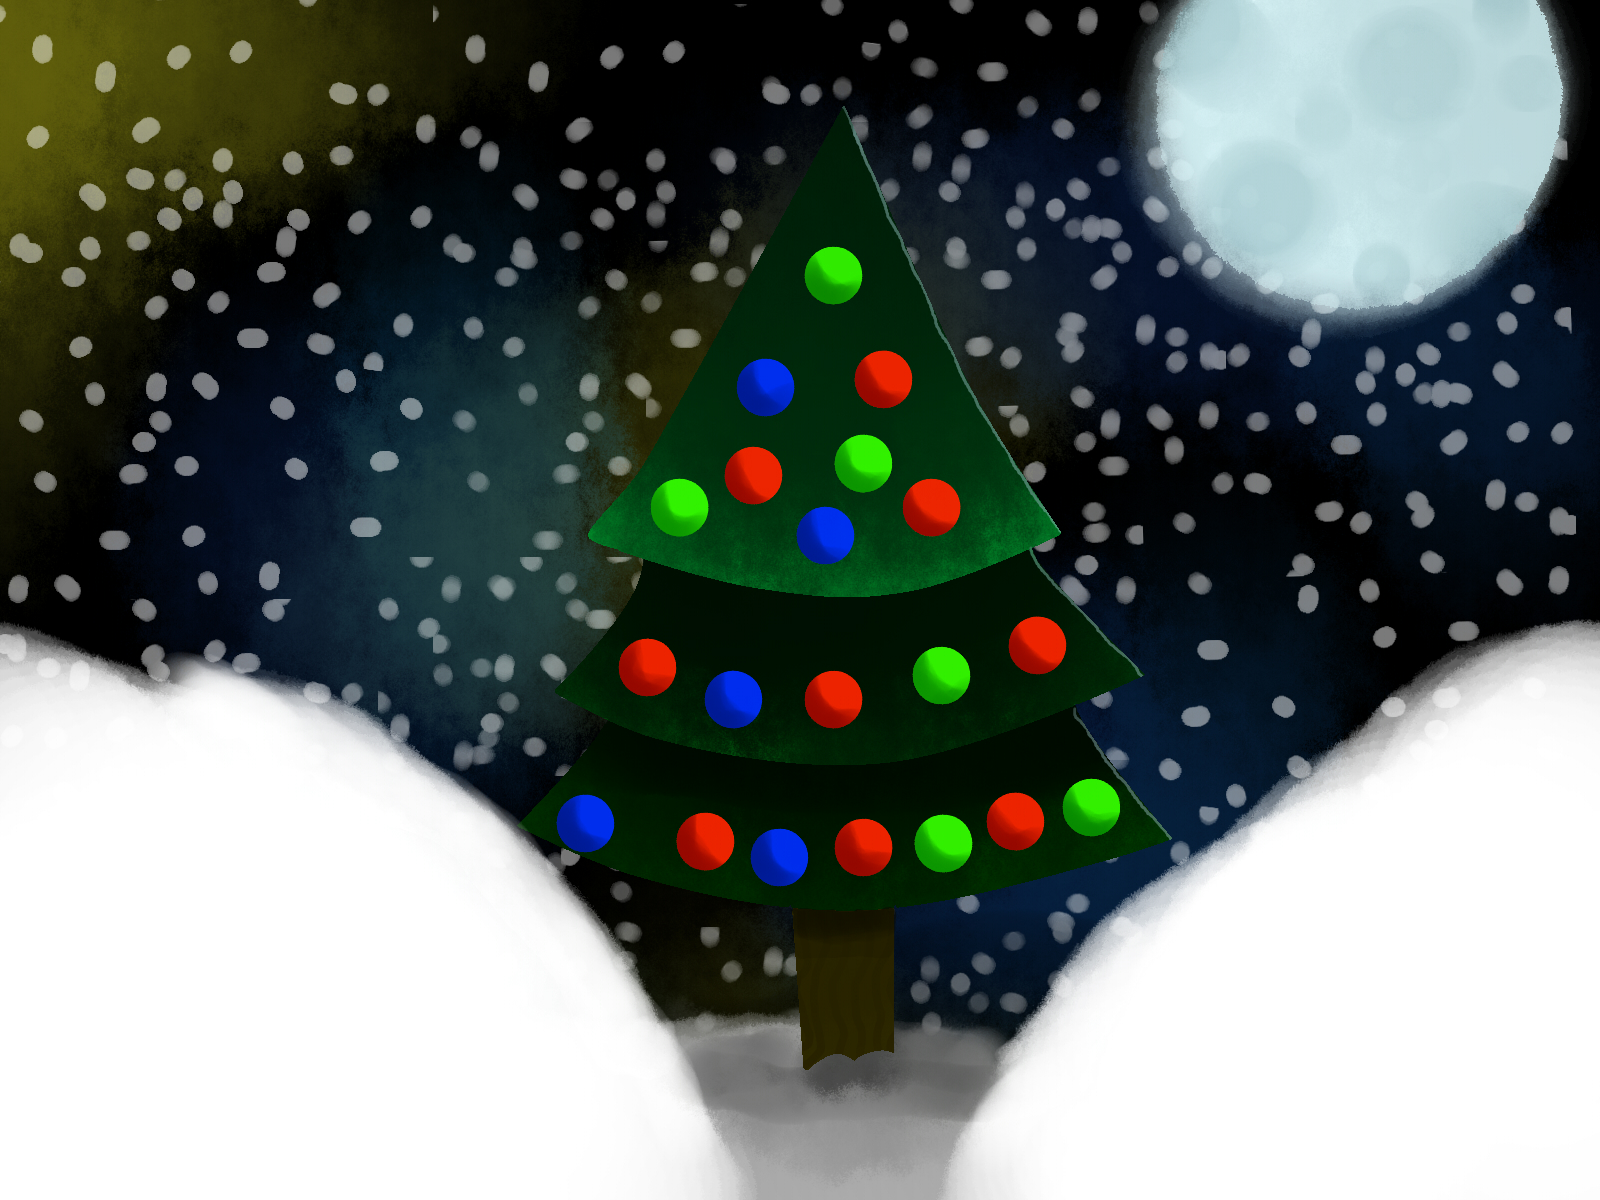 Lonely Christmas.Lonely Christmas Tree By Trevorminton On Newgrounds